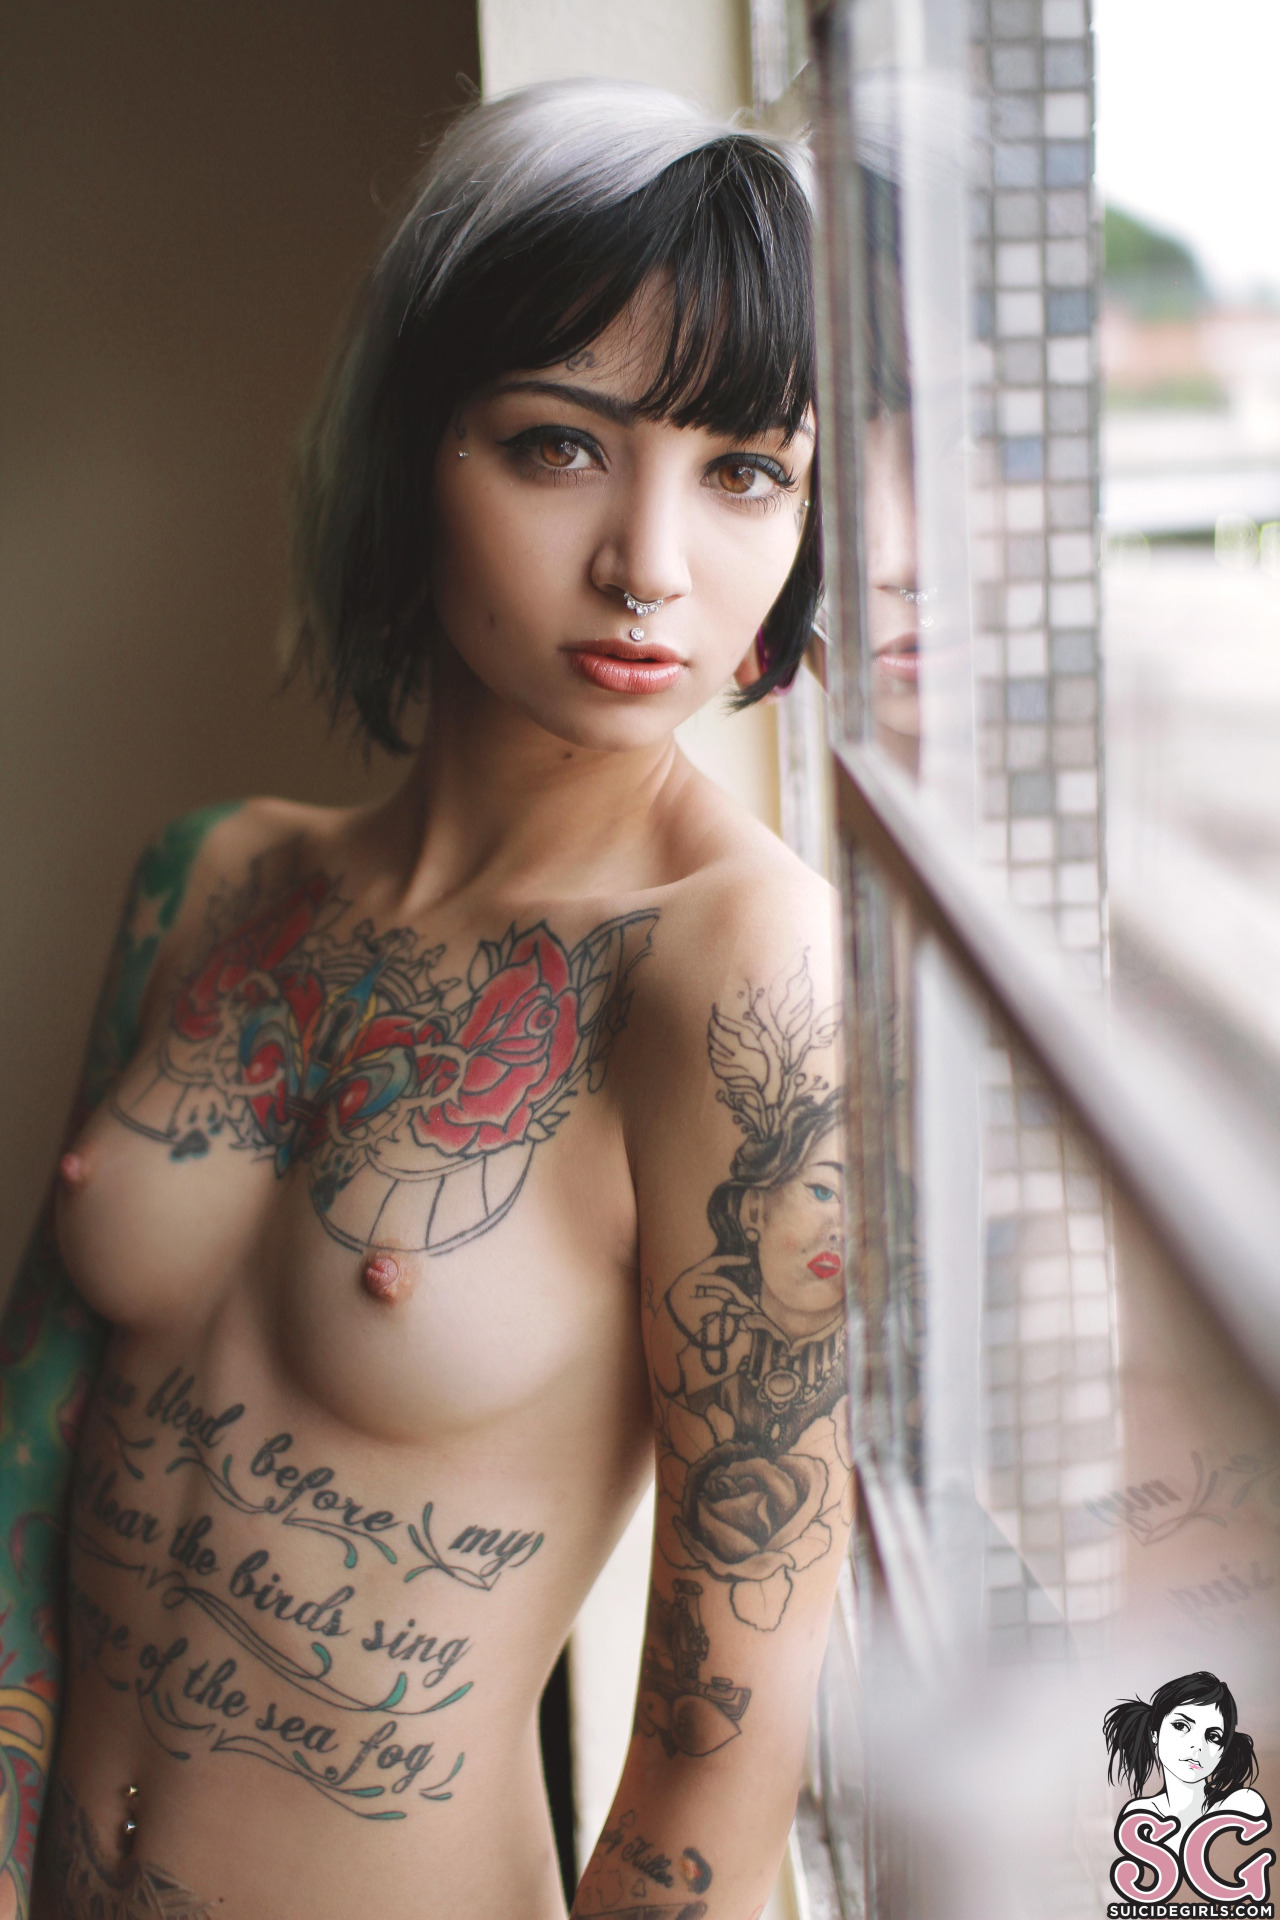 Nude girls with tattoos are not